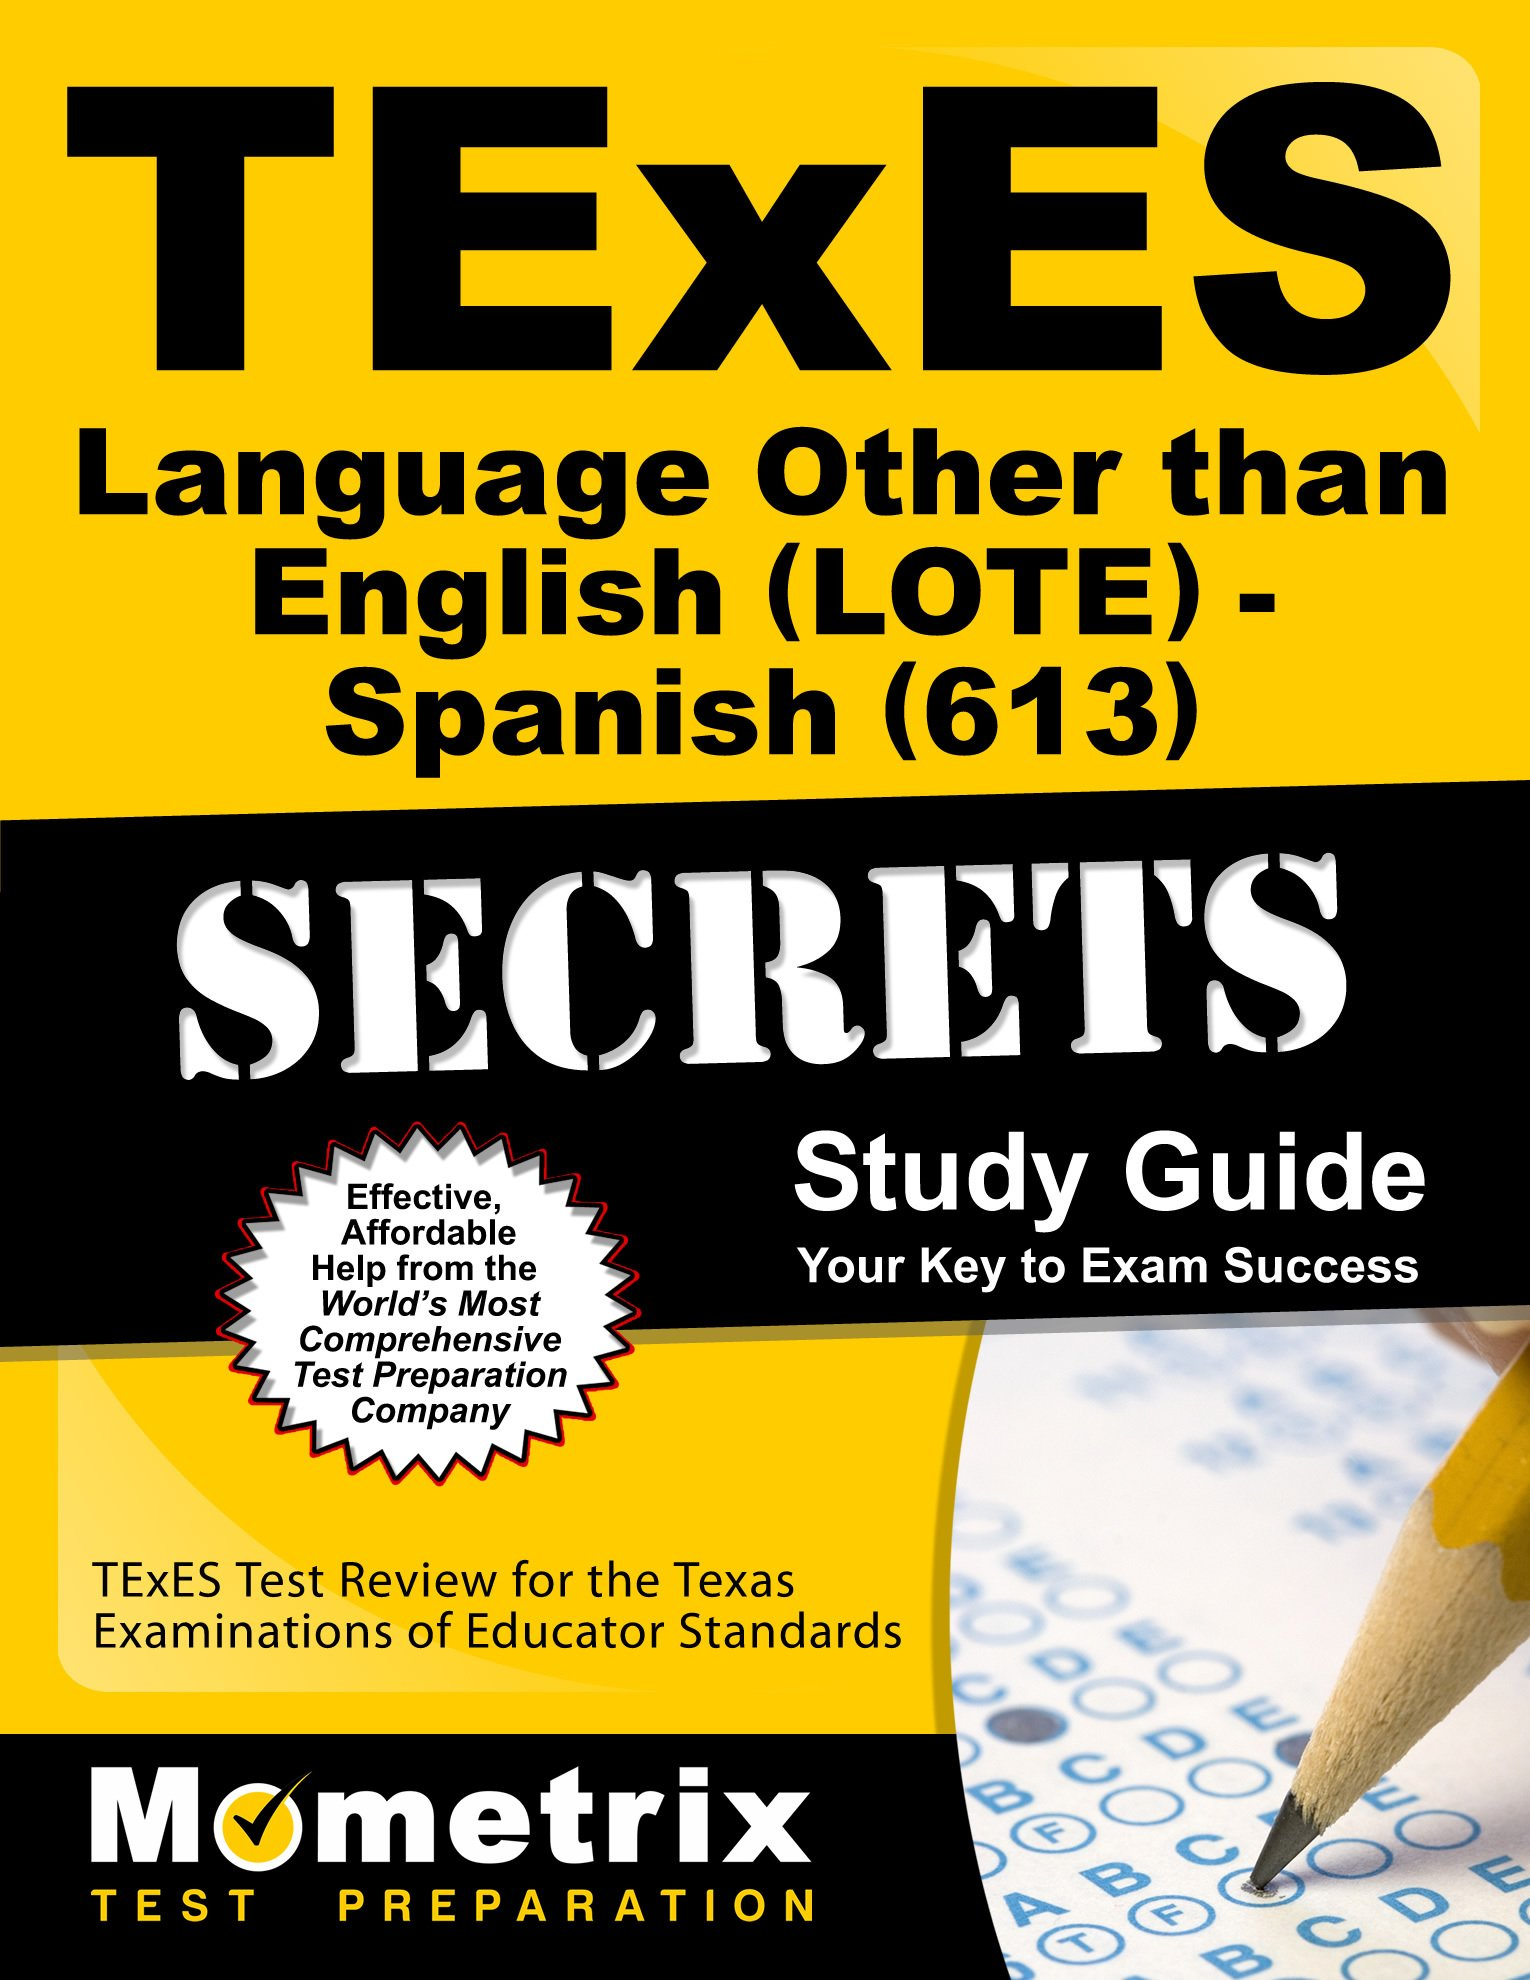 TExES Languages Other Than English (LOTE) - Spanish (613) Secrets Study Guide: TExES Test Review for the Texas Examinations of Educator Standards by Mometrix Media LLC